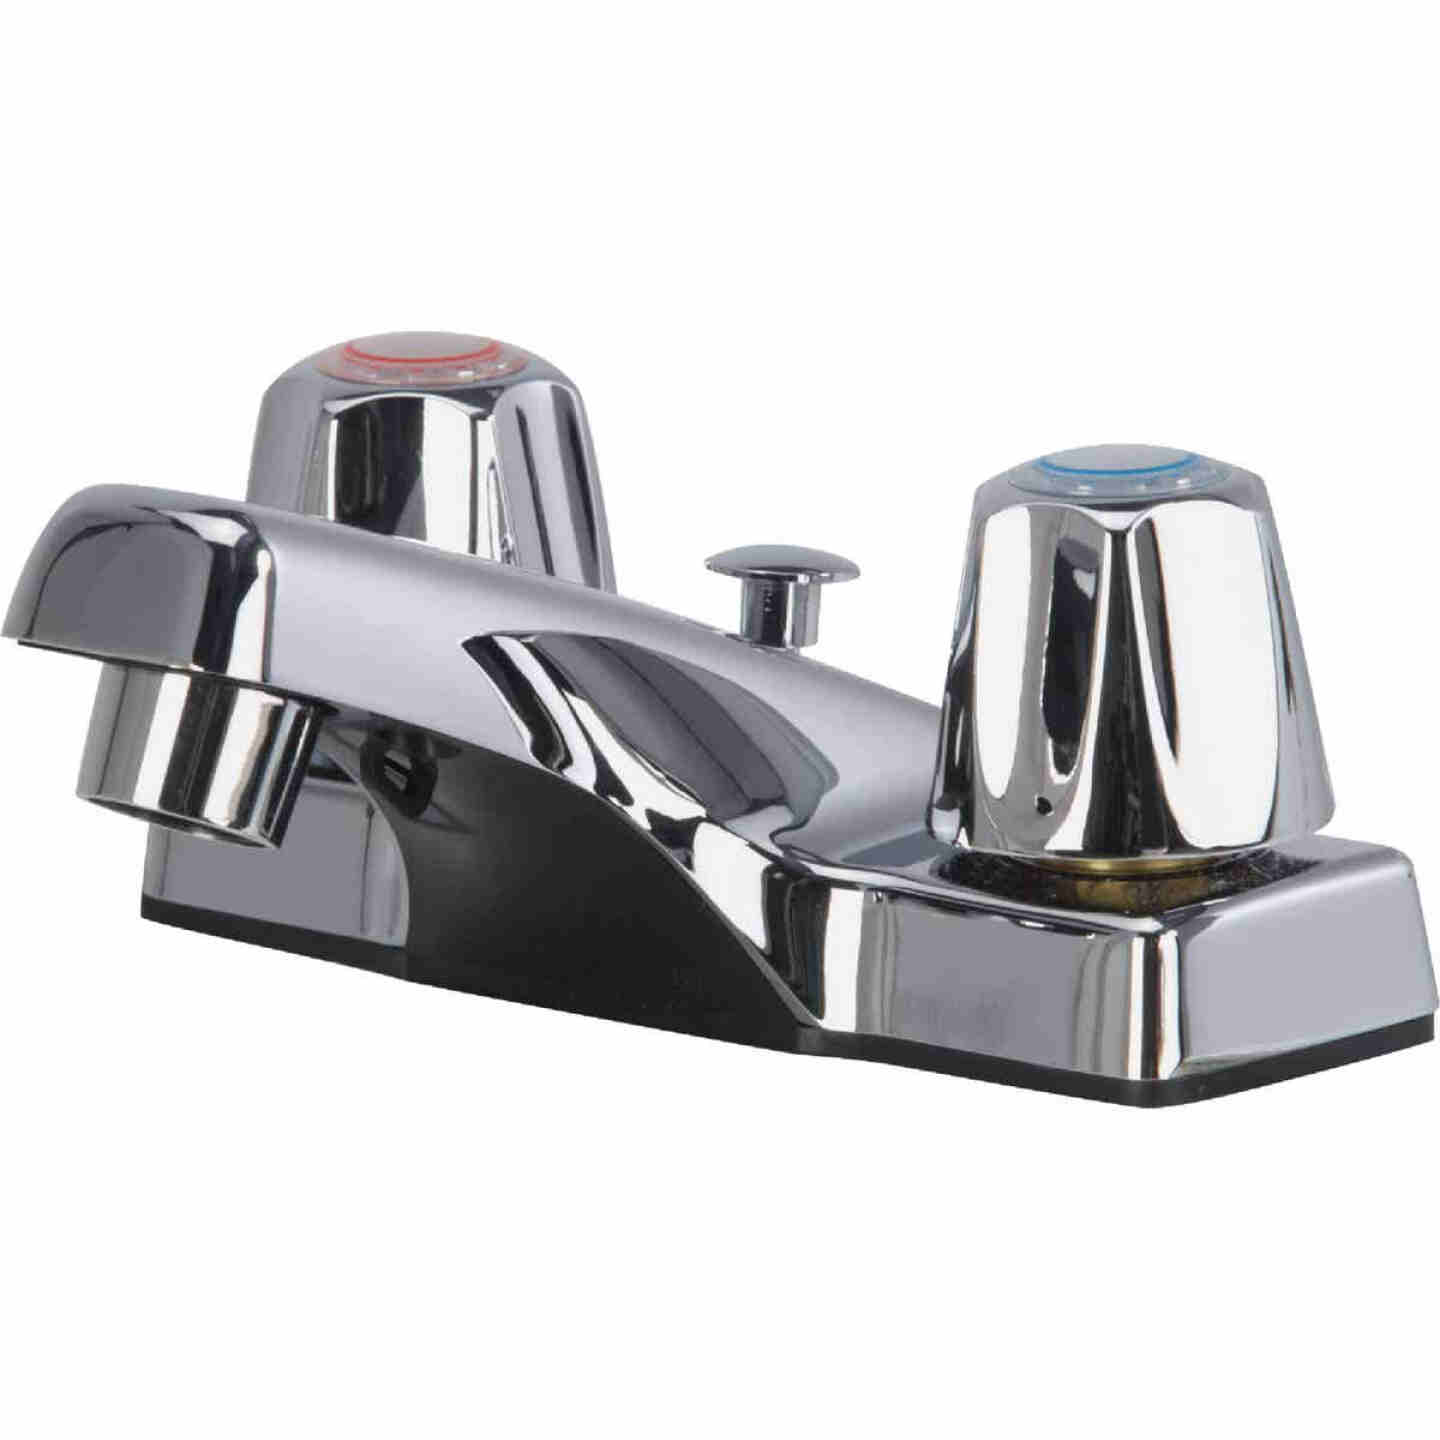 Home Impressions Chrome 2-Handle Knob 4 In. Centerset Bathroom Faucet with Pop-Up Image 1